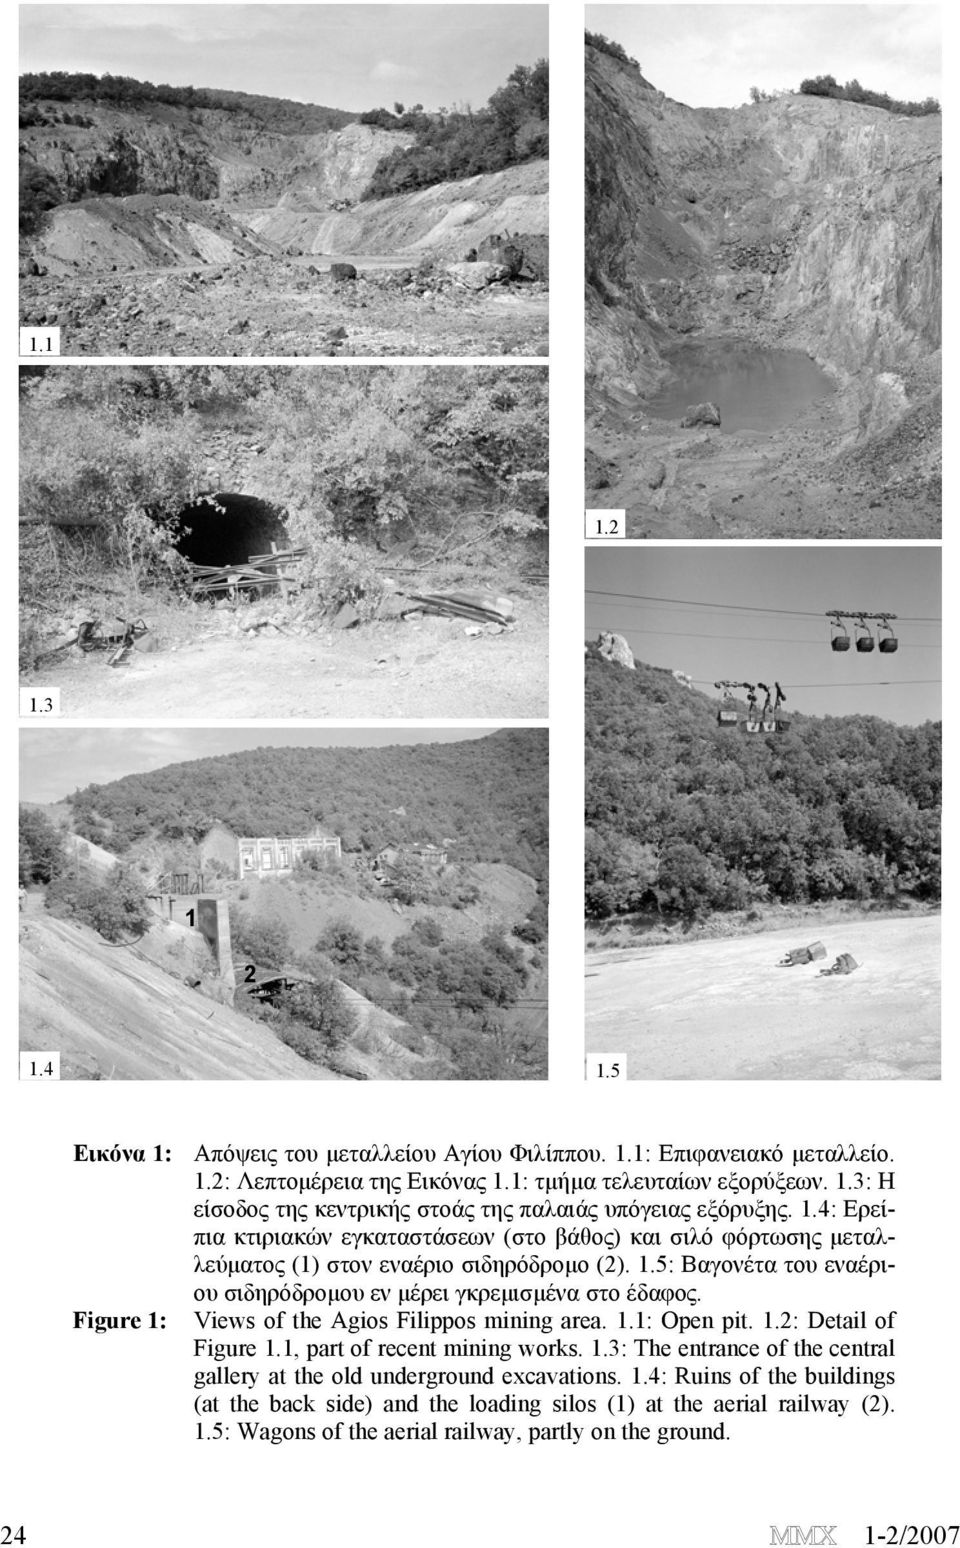 Figure 1: Views of the Agios Filippos mining area. 1.1: Open pit. 1.2: Detail of Figure 1.1, part of recent mining works. 1.3: The entrance of the central gallery at the old underground excavations.